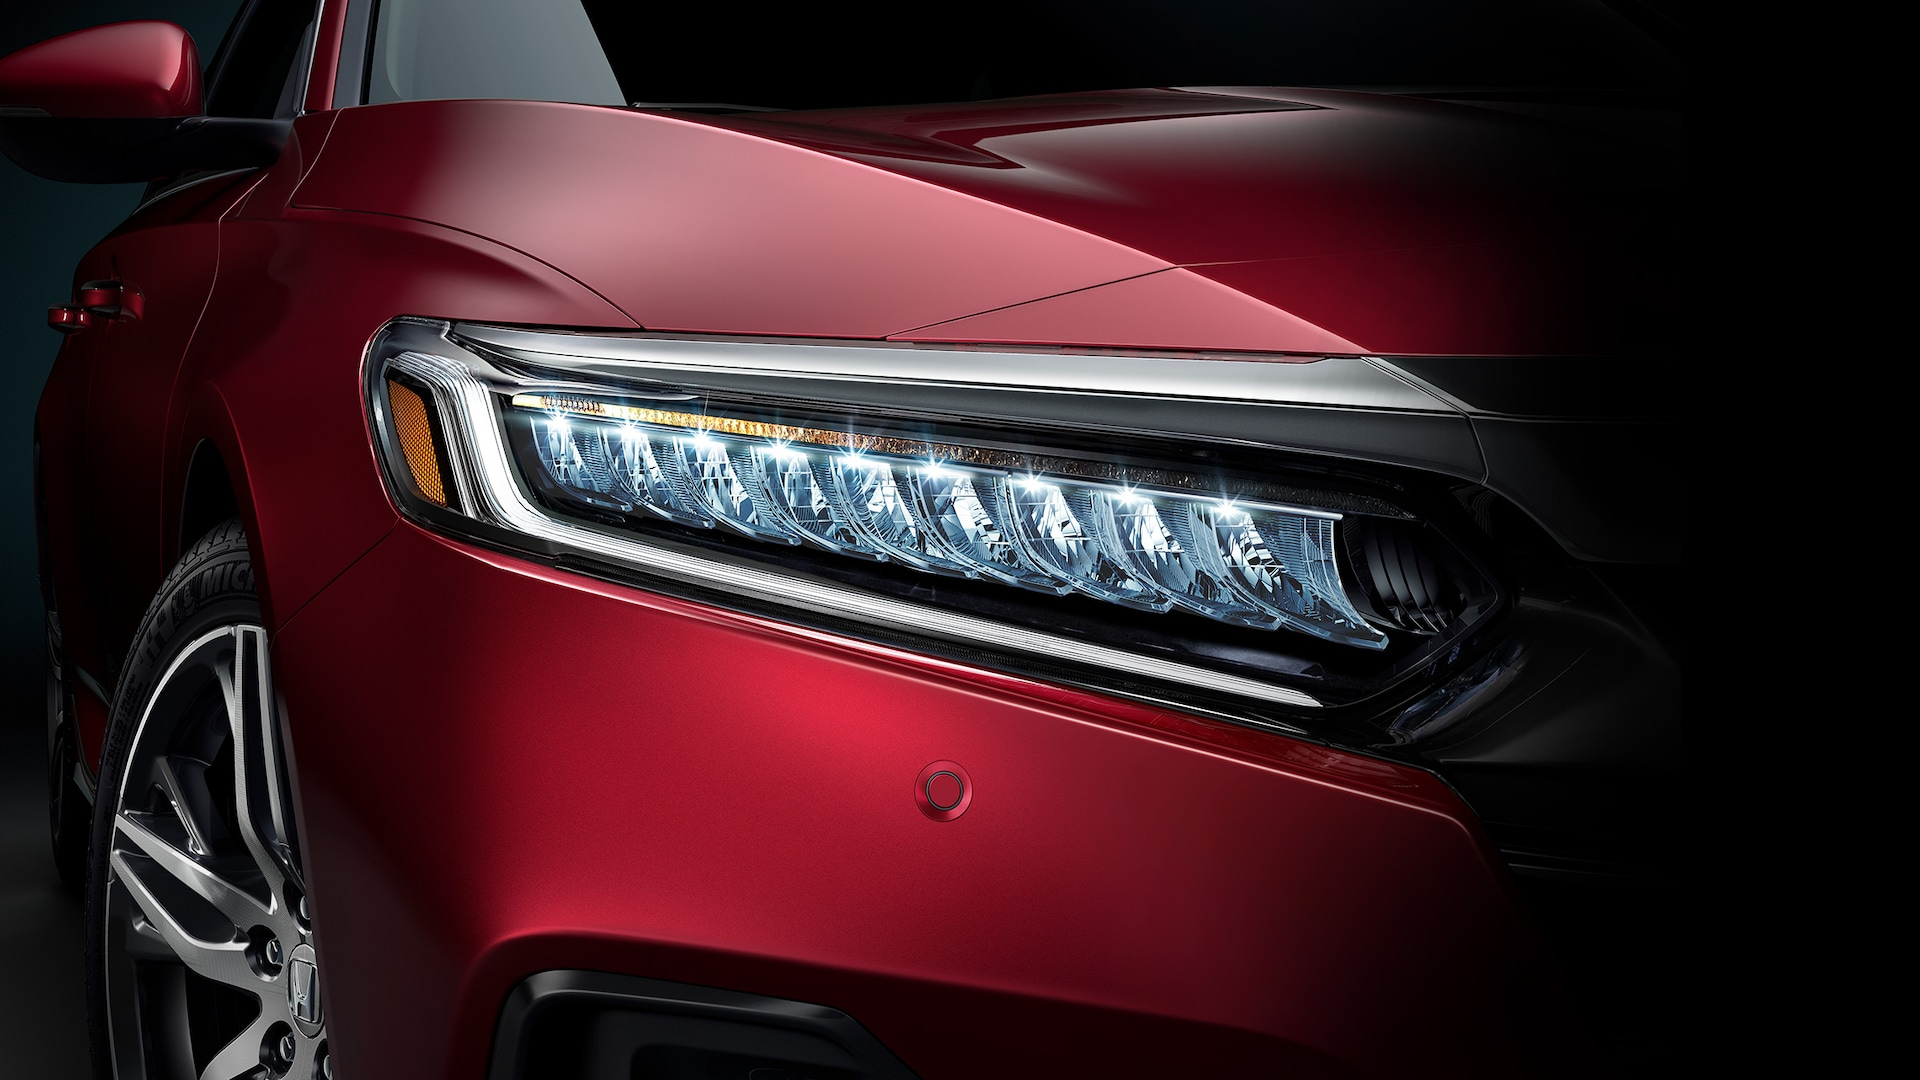 Detalle frontal del Accord Touring 2.0T 2021 en Radiant Red Metallic, con un enfoque en las luces delanteras de LED.